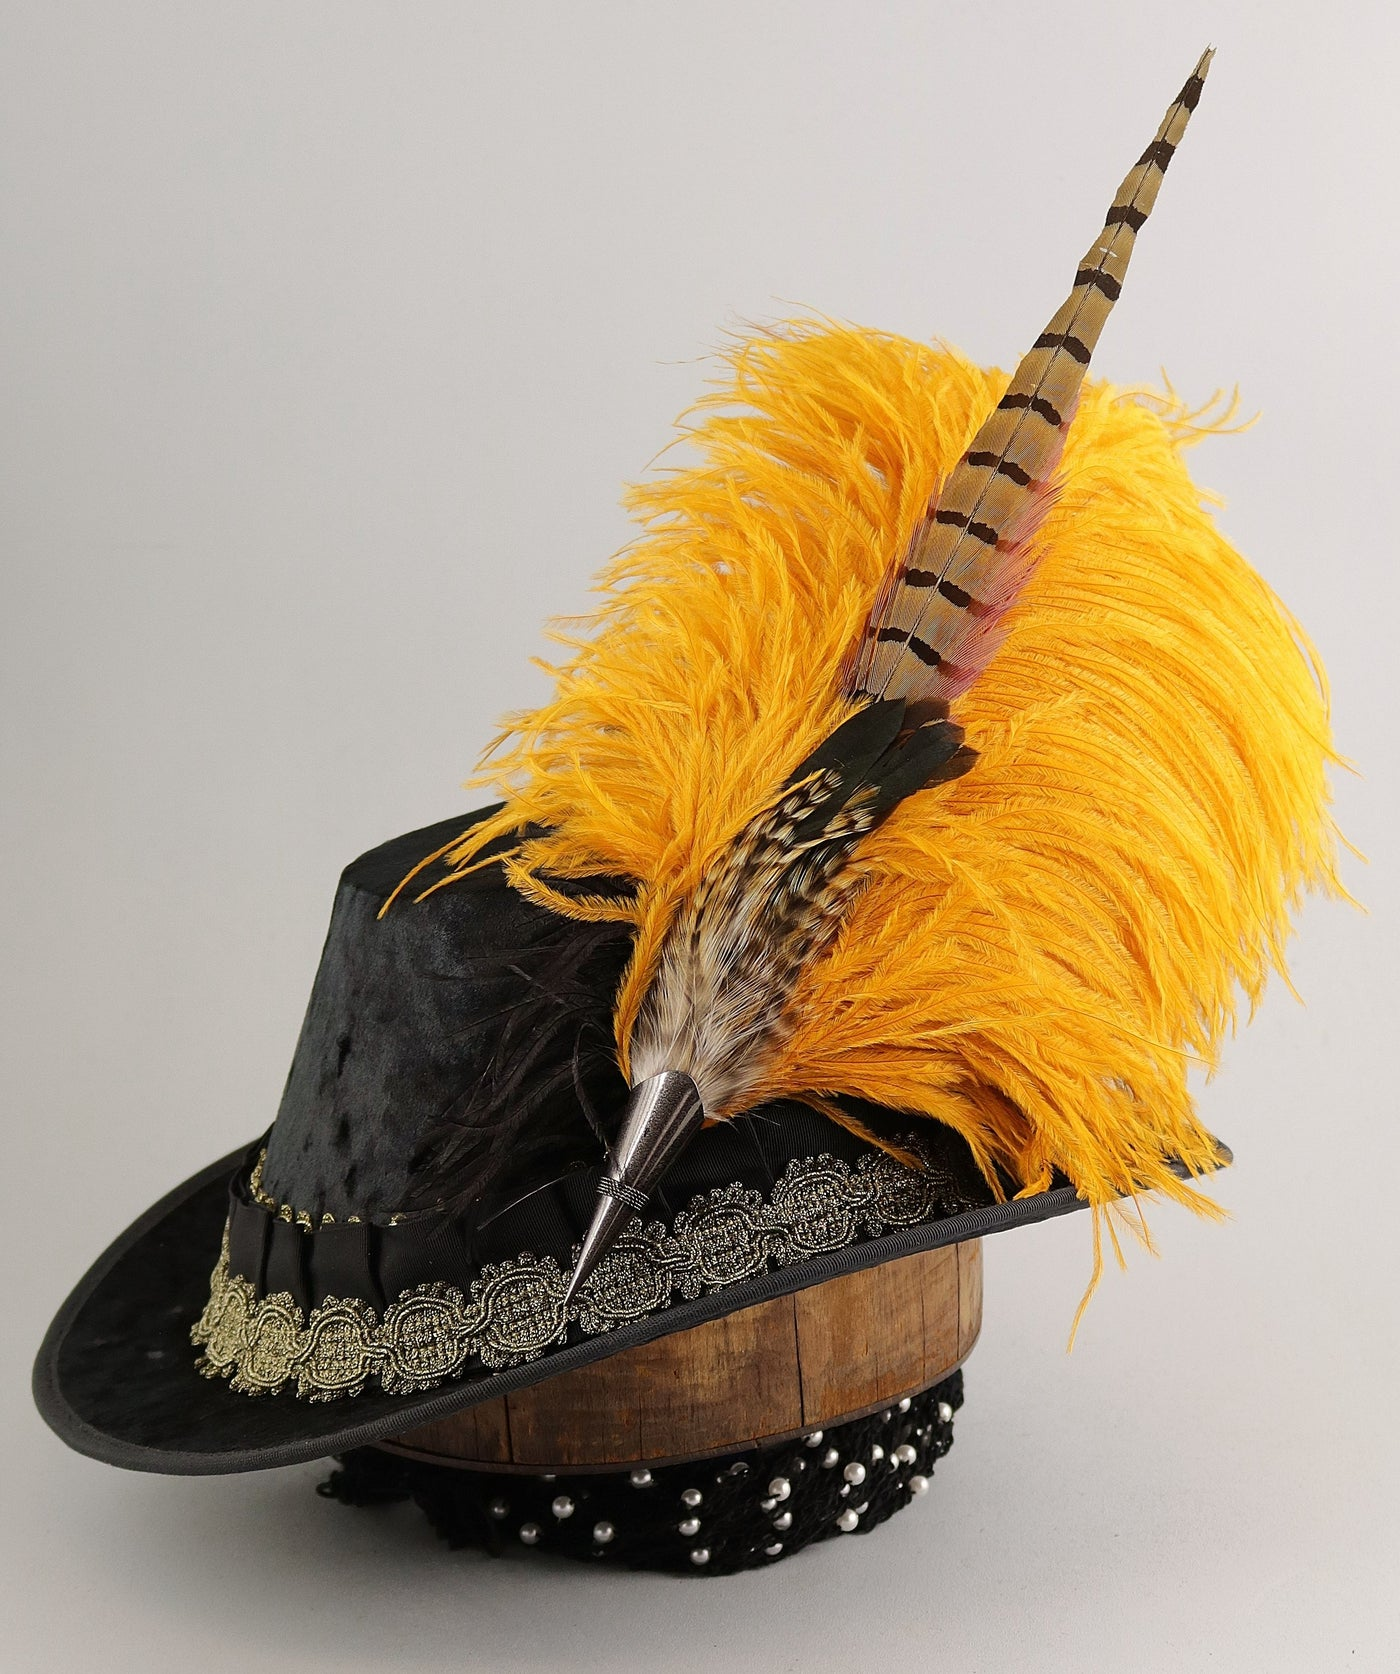 Crushed Velvet Tall Hat - Black Gold Medallion - Tall Toad